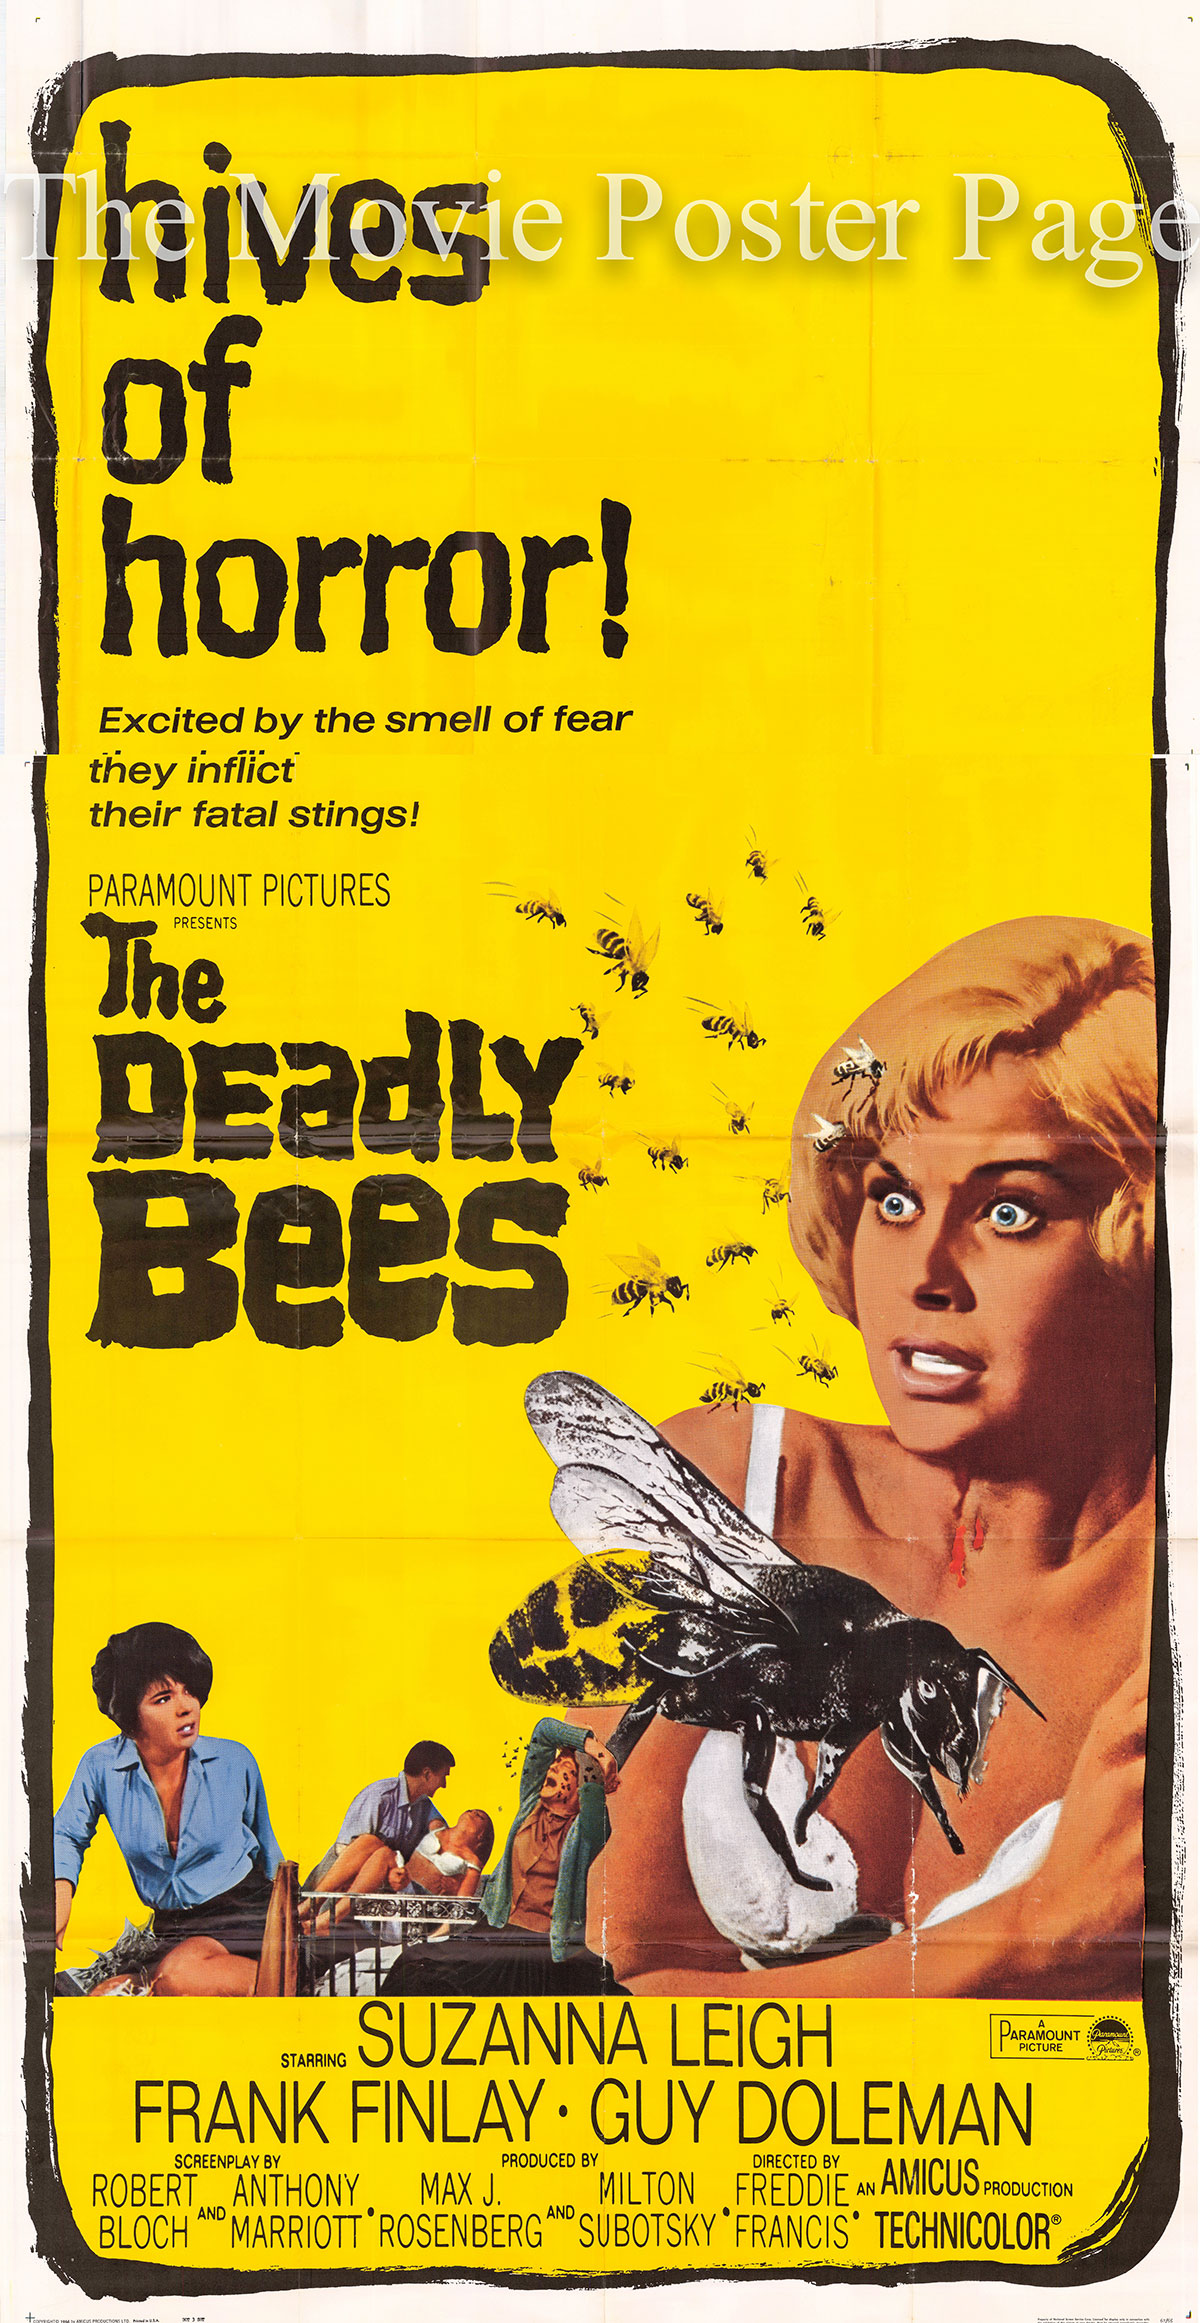 Pictured is a US three-sheet promotional poster for the 1967 Freddie Francis film The Deadly Bees starring Suzanna Leigh as Vicki Robbins.